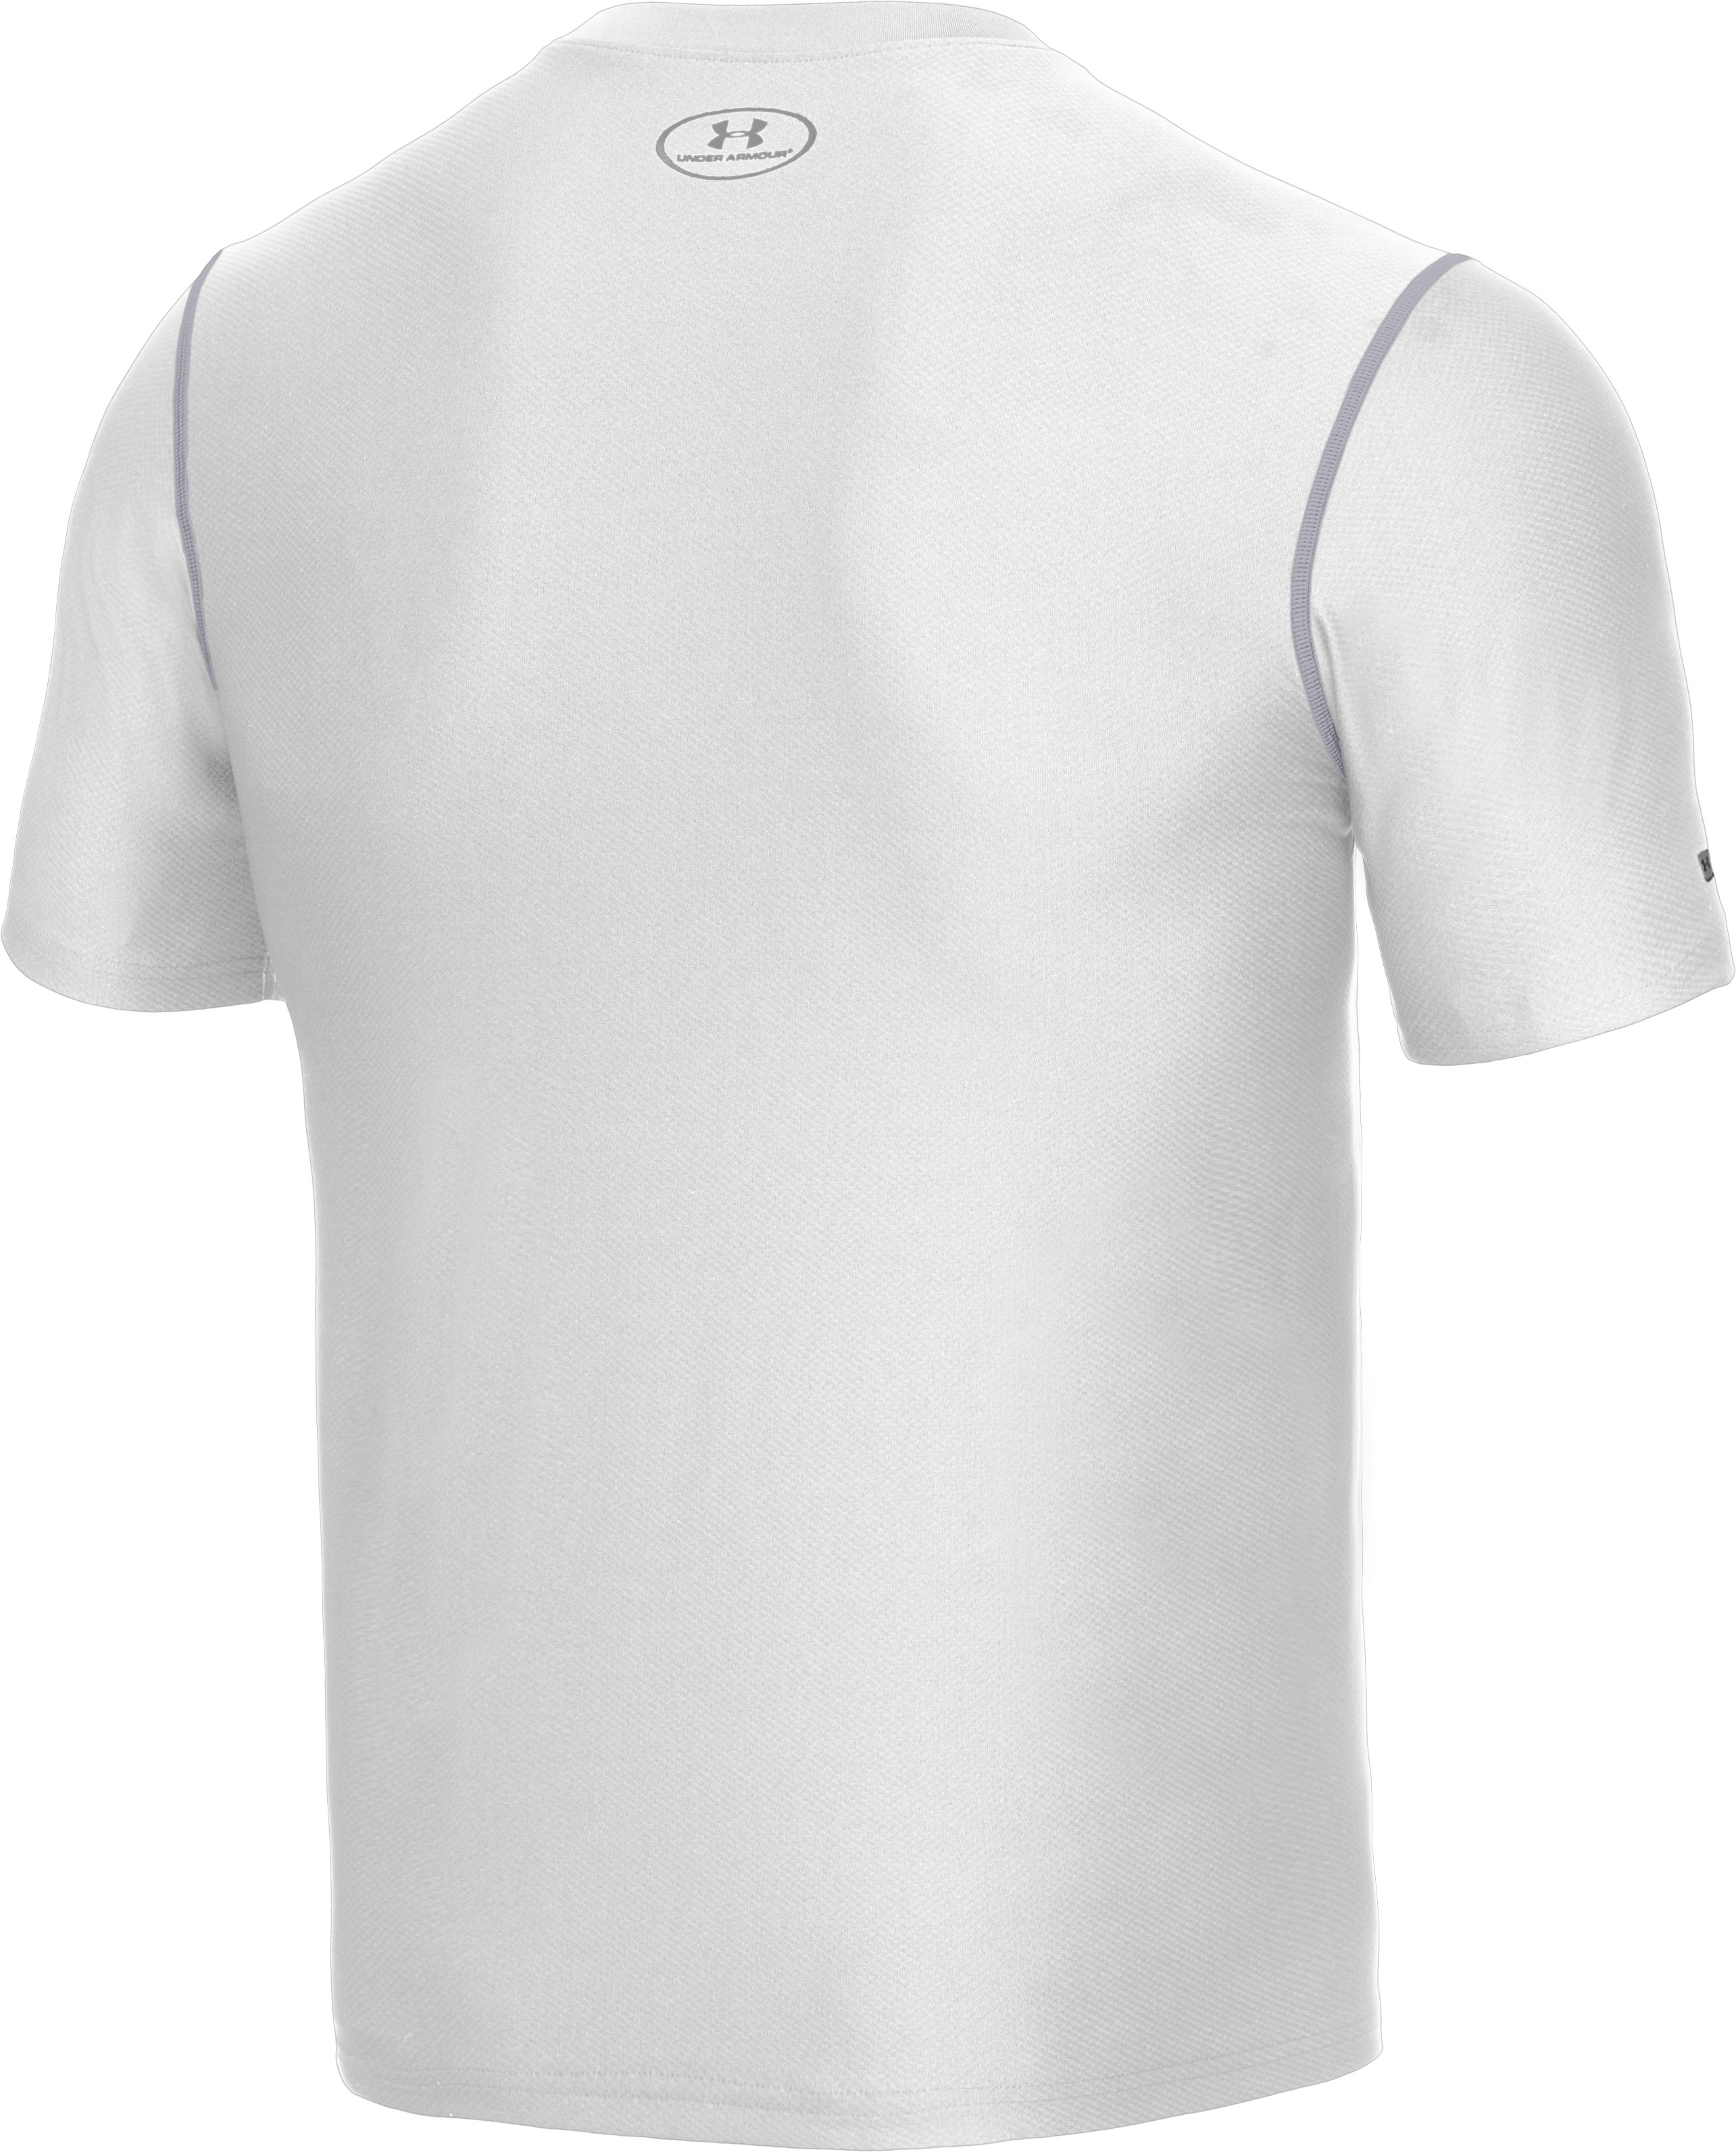 Men's HeatGear® Fitted Short Sleeve Crew, White, undefined